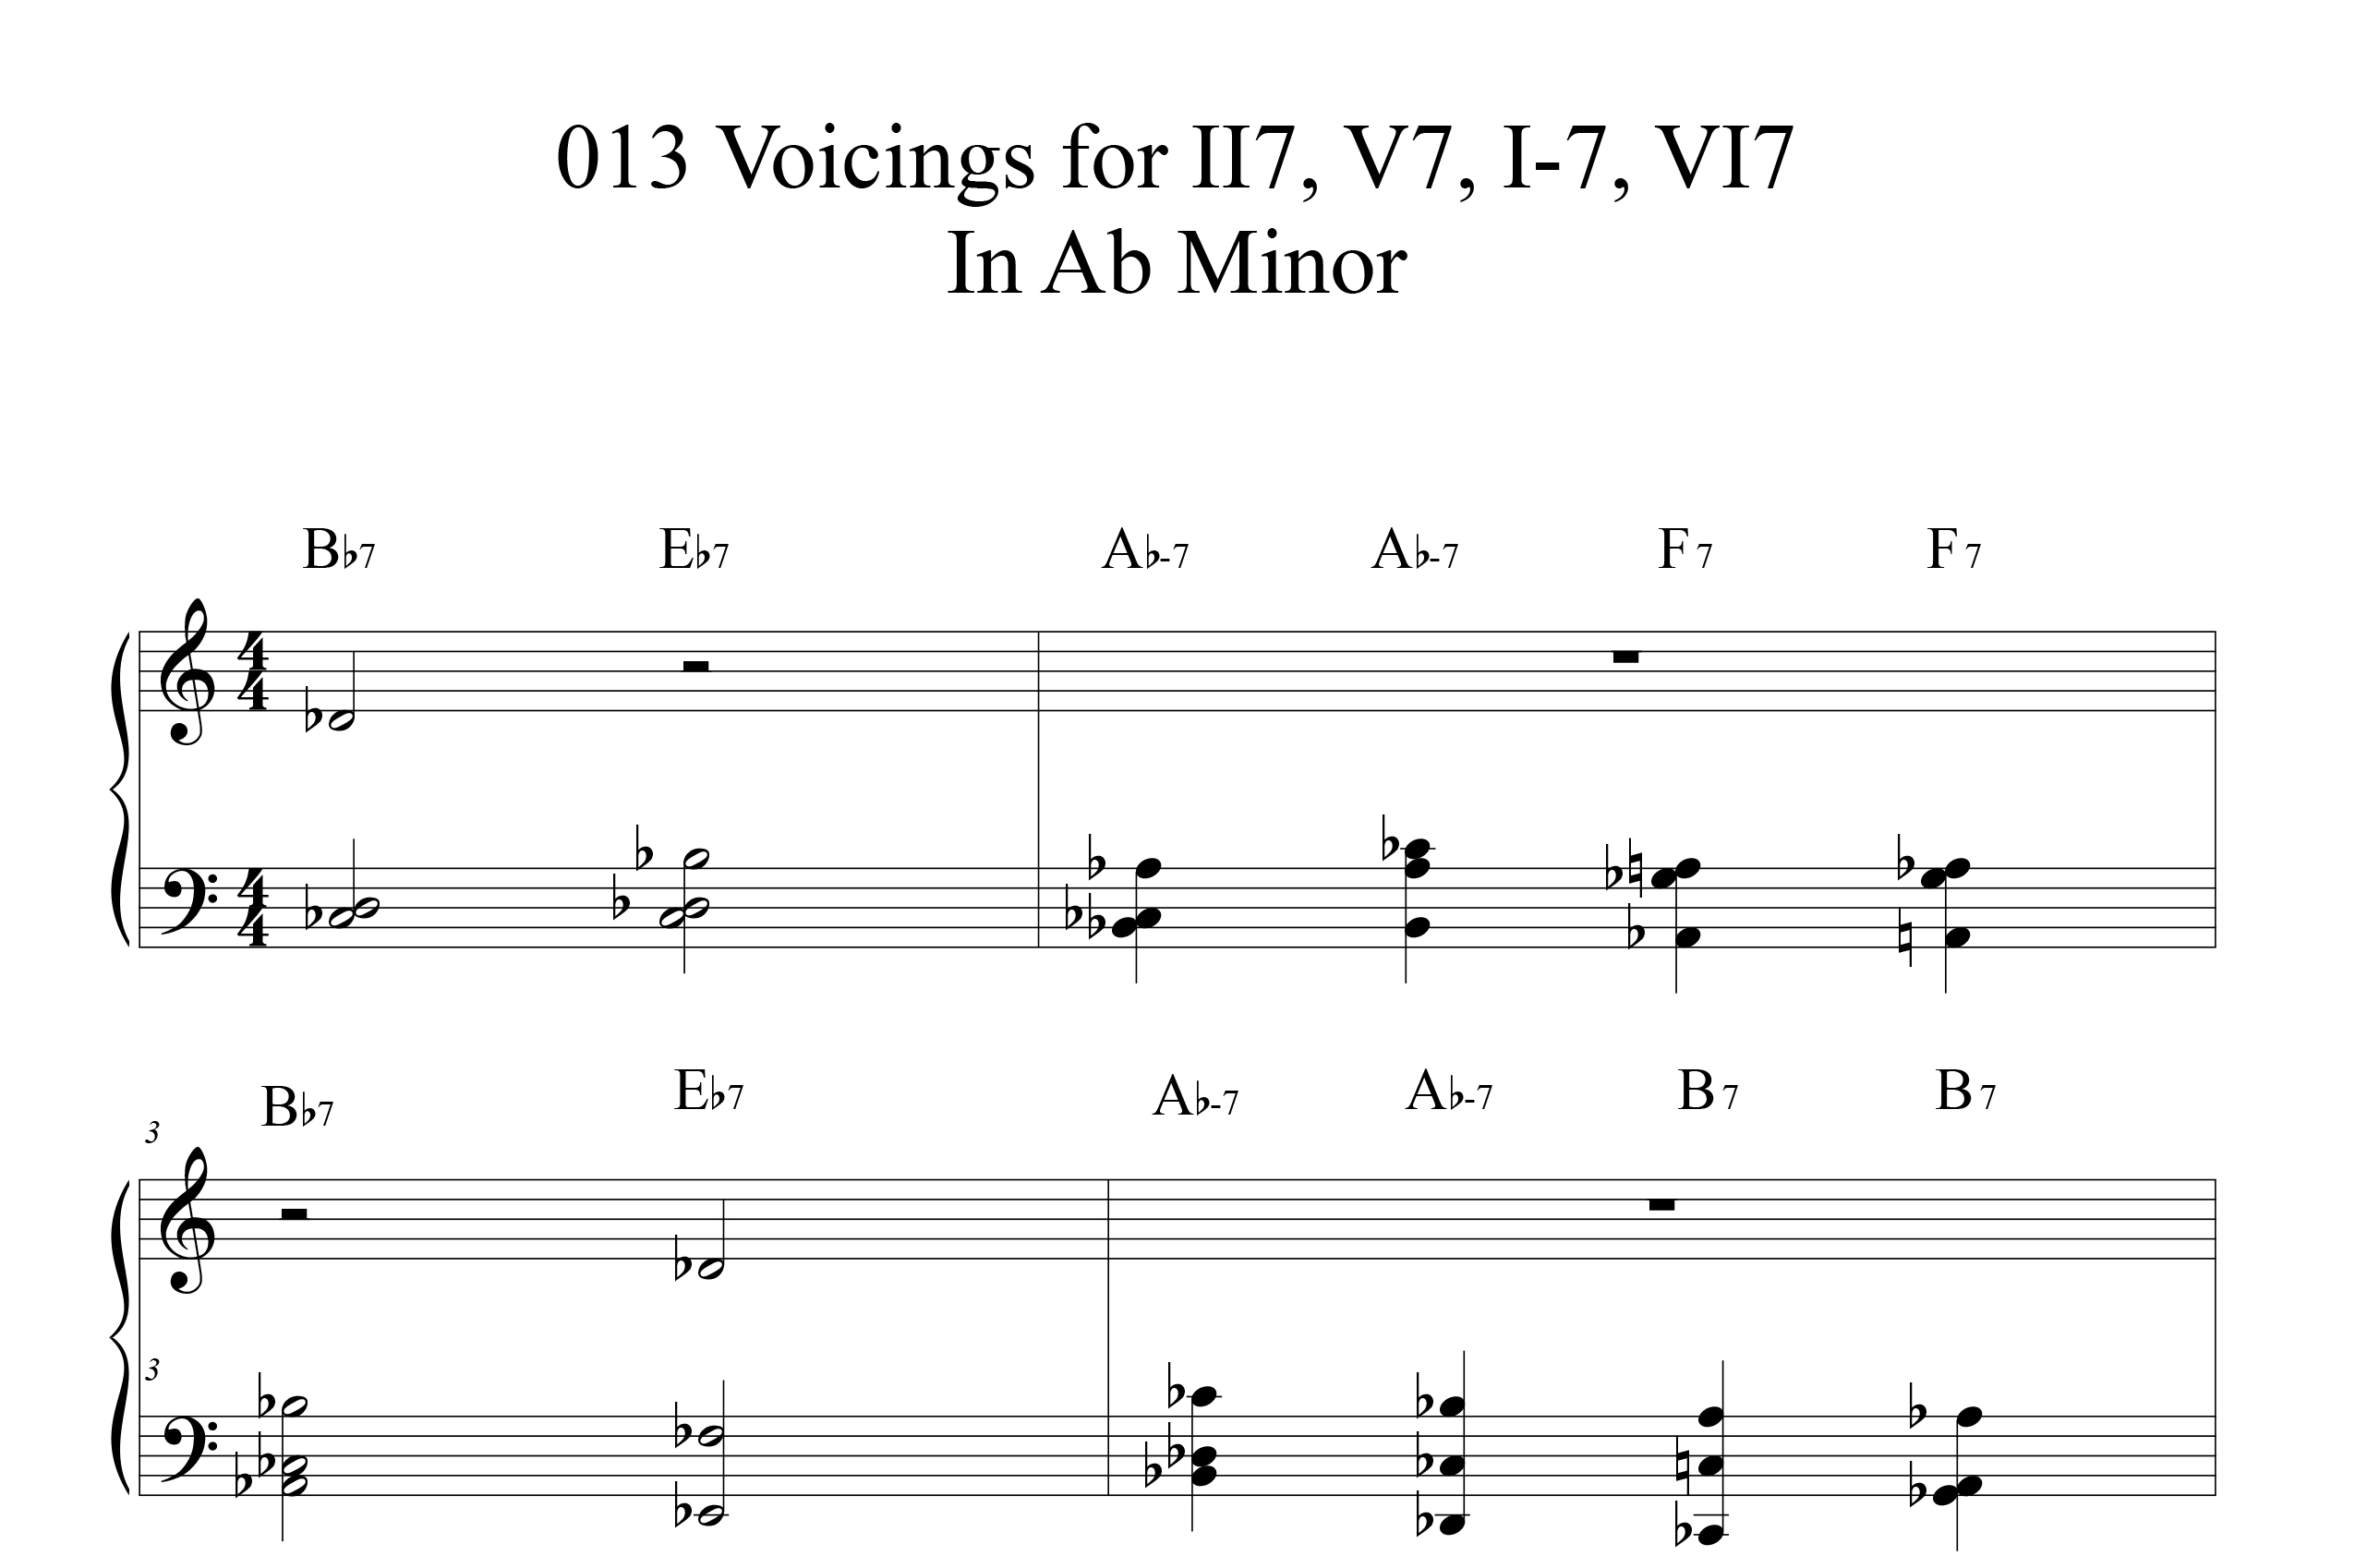 Applying-013-chord-voicings-key-of-Ab-etude by Bruce Arnold for Muse Eek Publishing Company